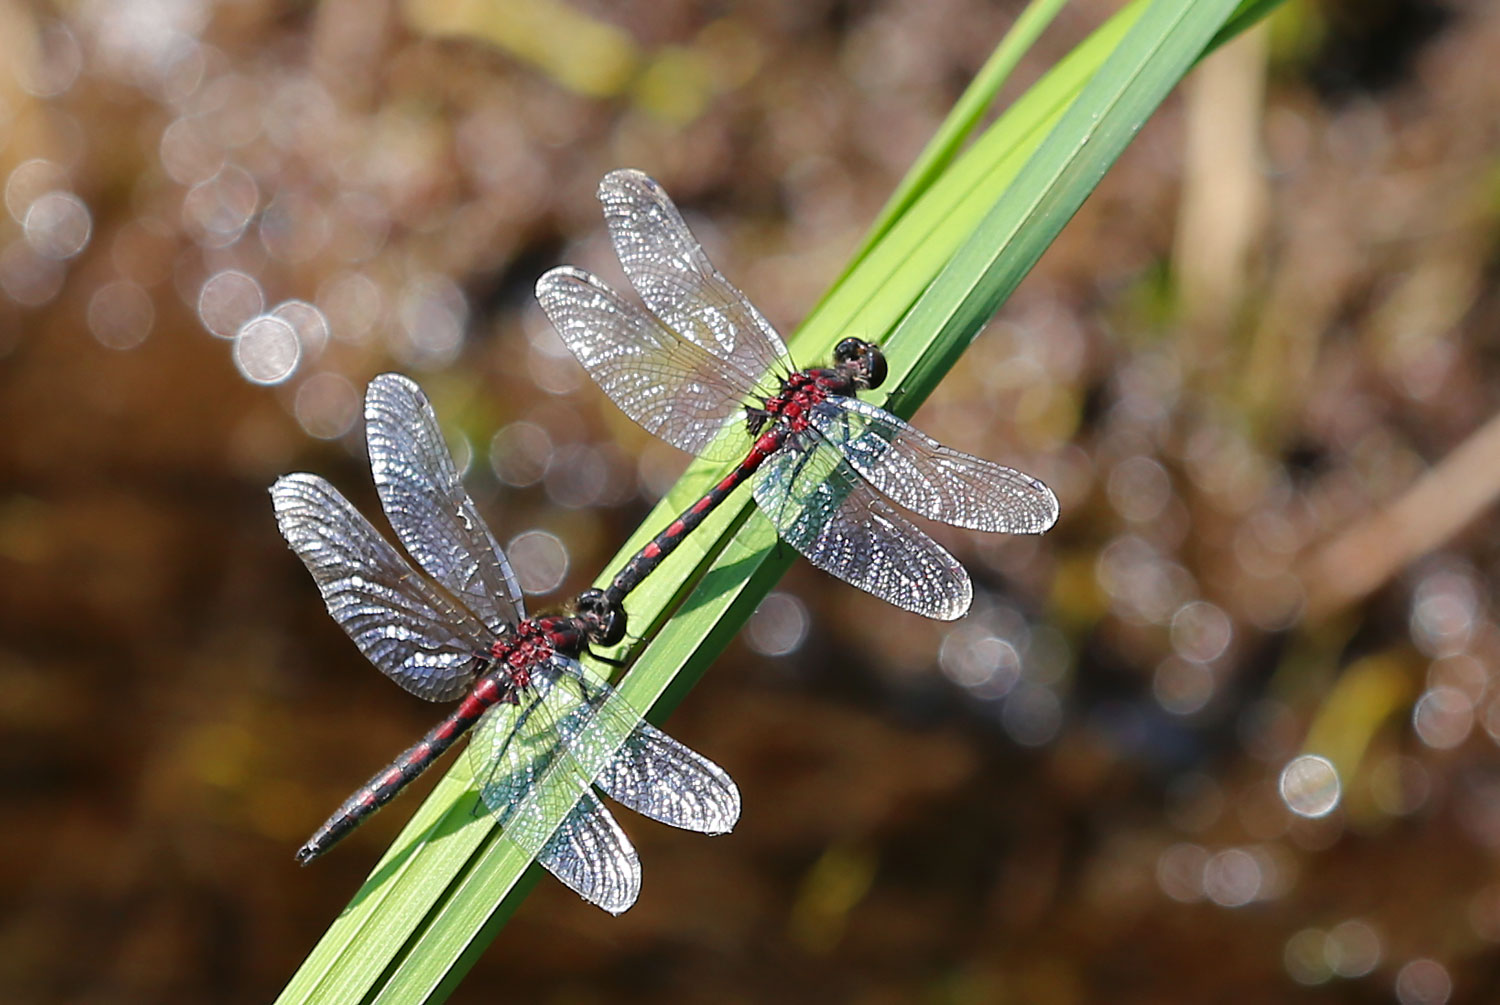 Hudsonian whiteface dragonflies ( Leucorrhinia hudsonica  ) in the tandem position.